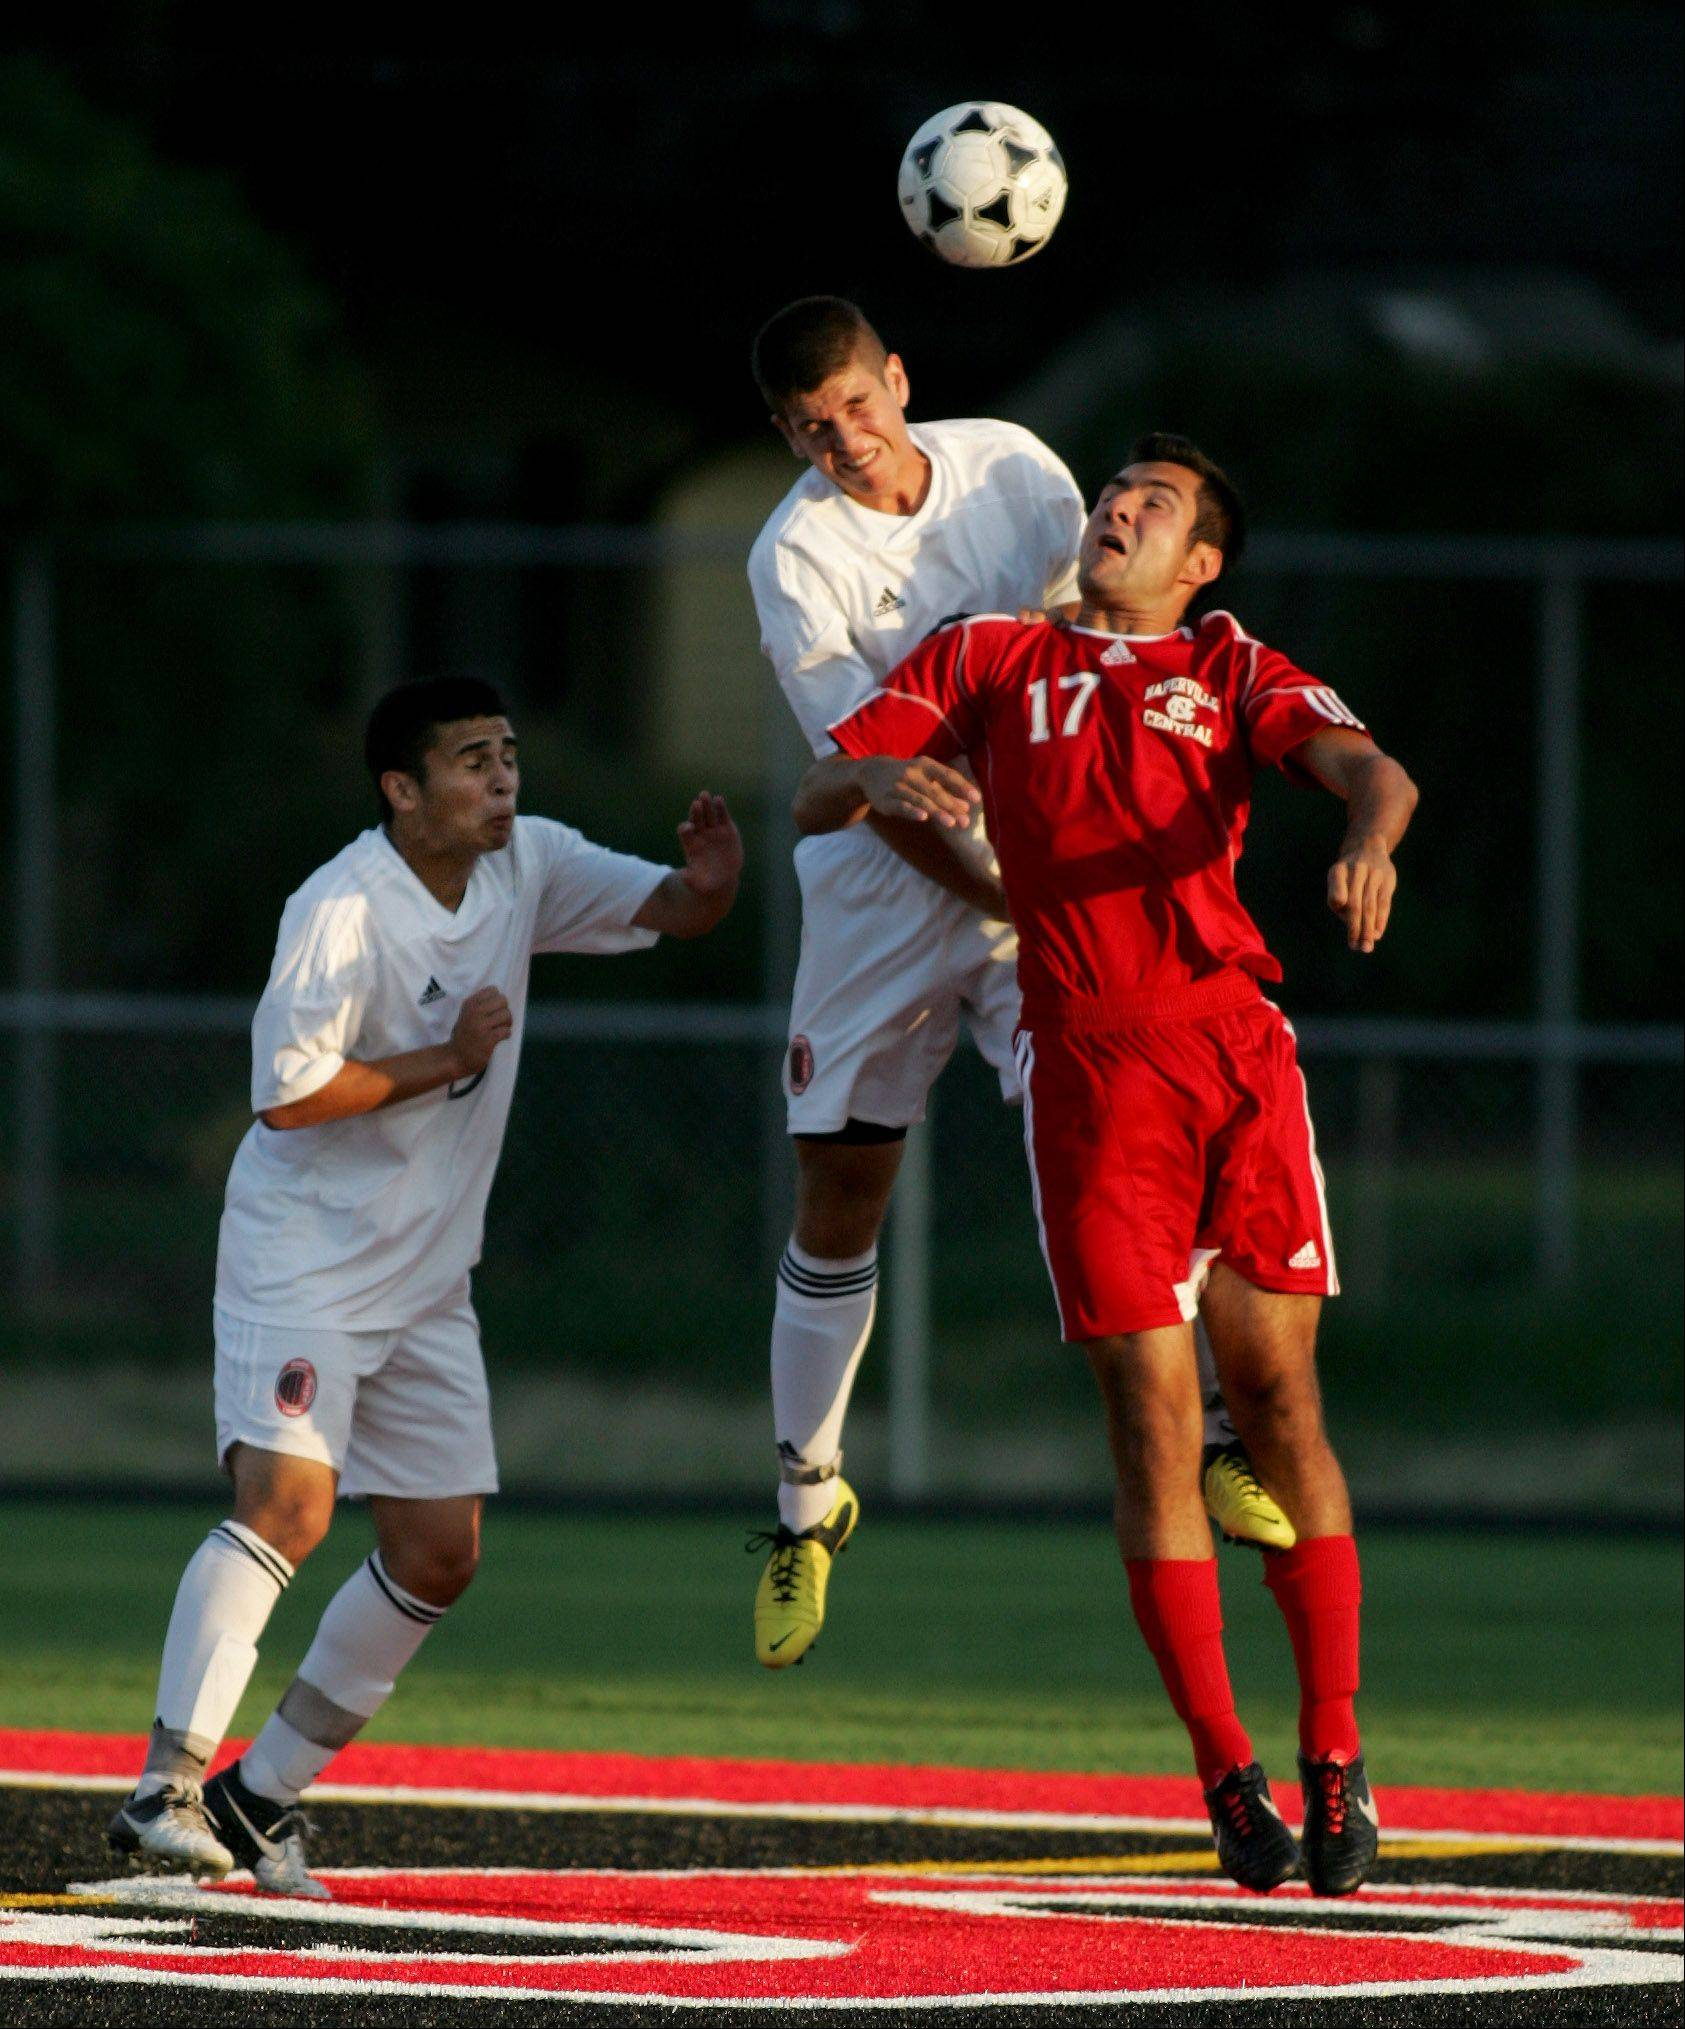 The play of Connor Allen, right, is among the reasons for Naperville Central's successful season. At left are Glenbard East's Carlos Urbina and Matt Rossetti.